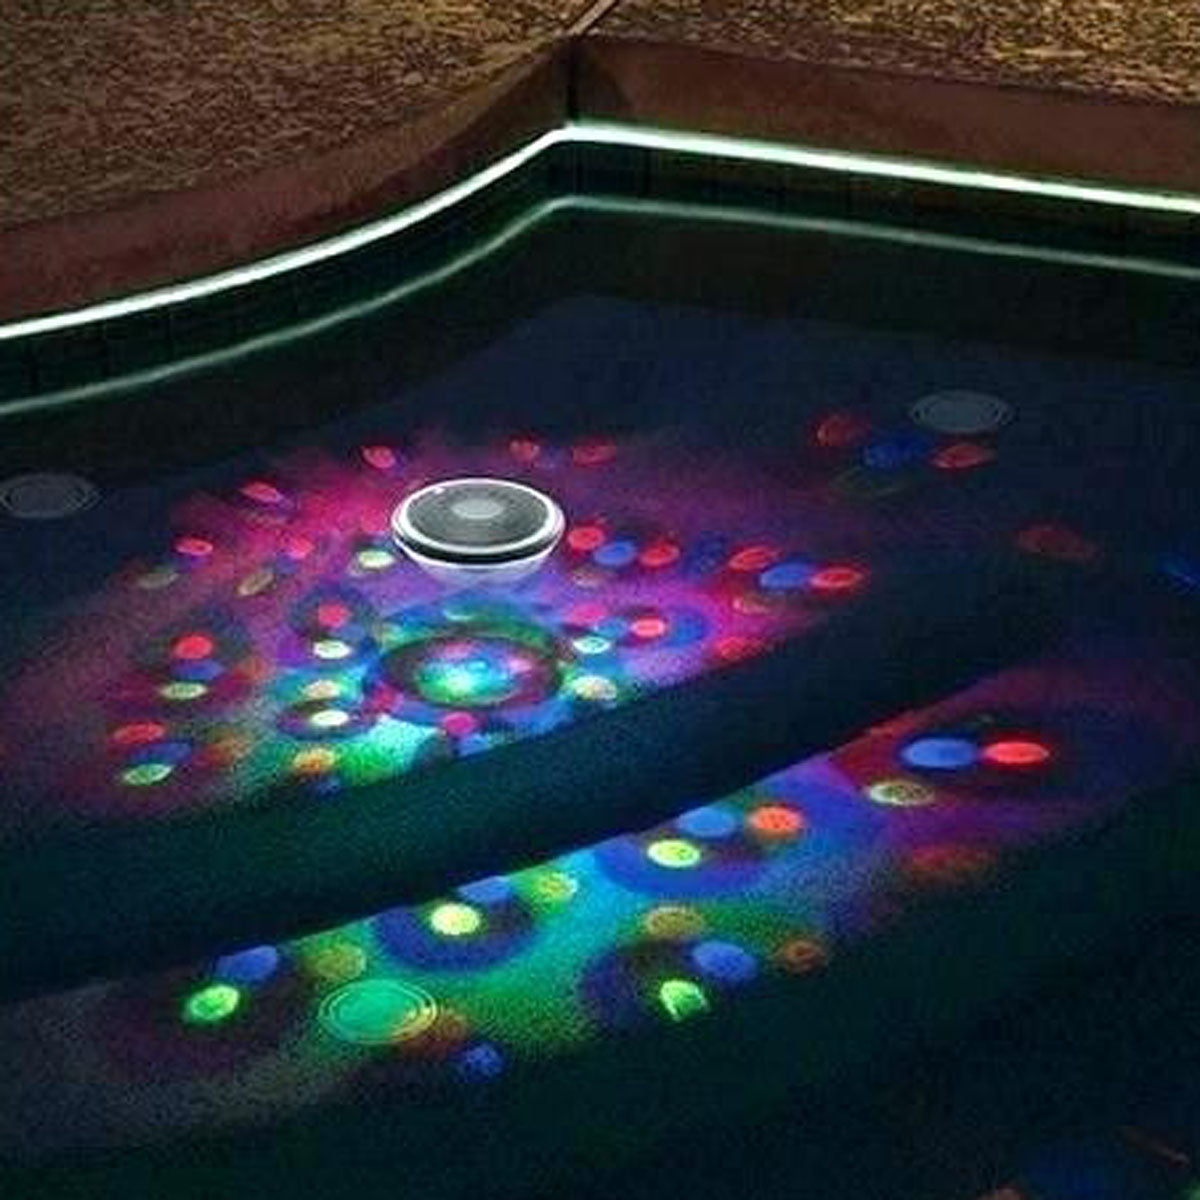 products/pool-light-show-pool-light-show-solar-floating-lights-a-inspire-game-underwater-fountain-game-underwater-pool-light-show-fountain_7b8df786-4372-4eaa-a5d6-18066644b2f6.jpg